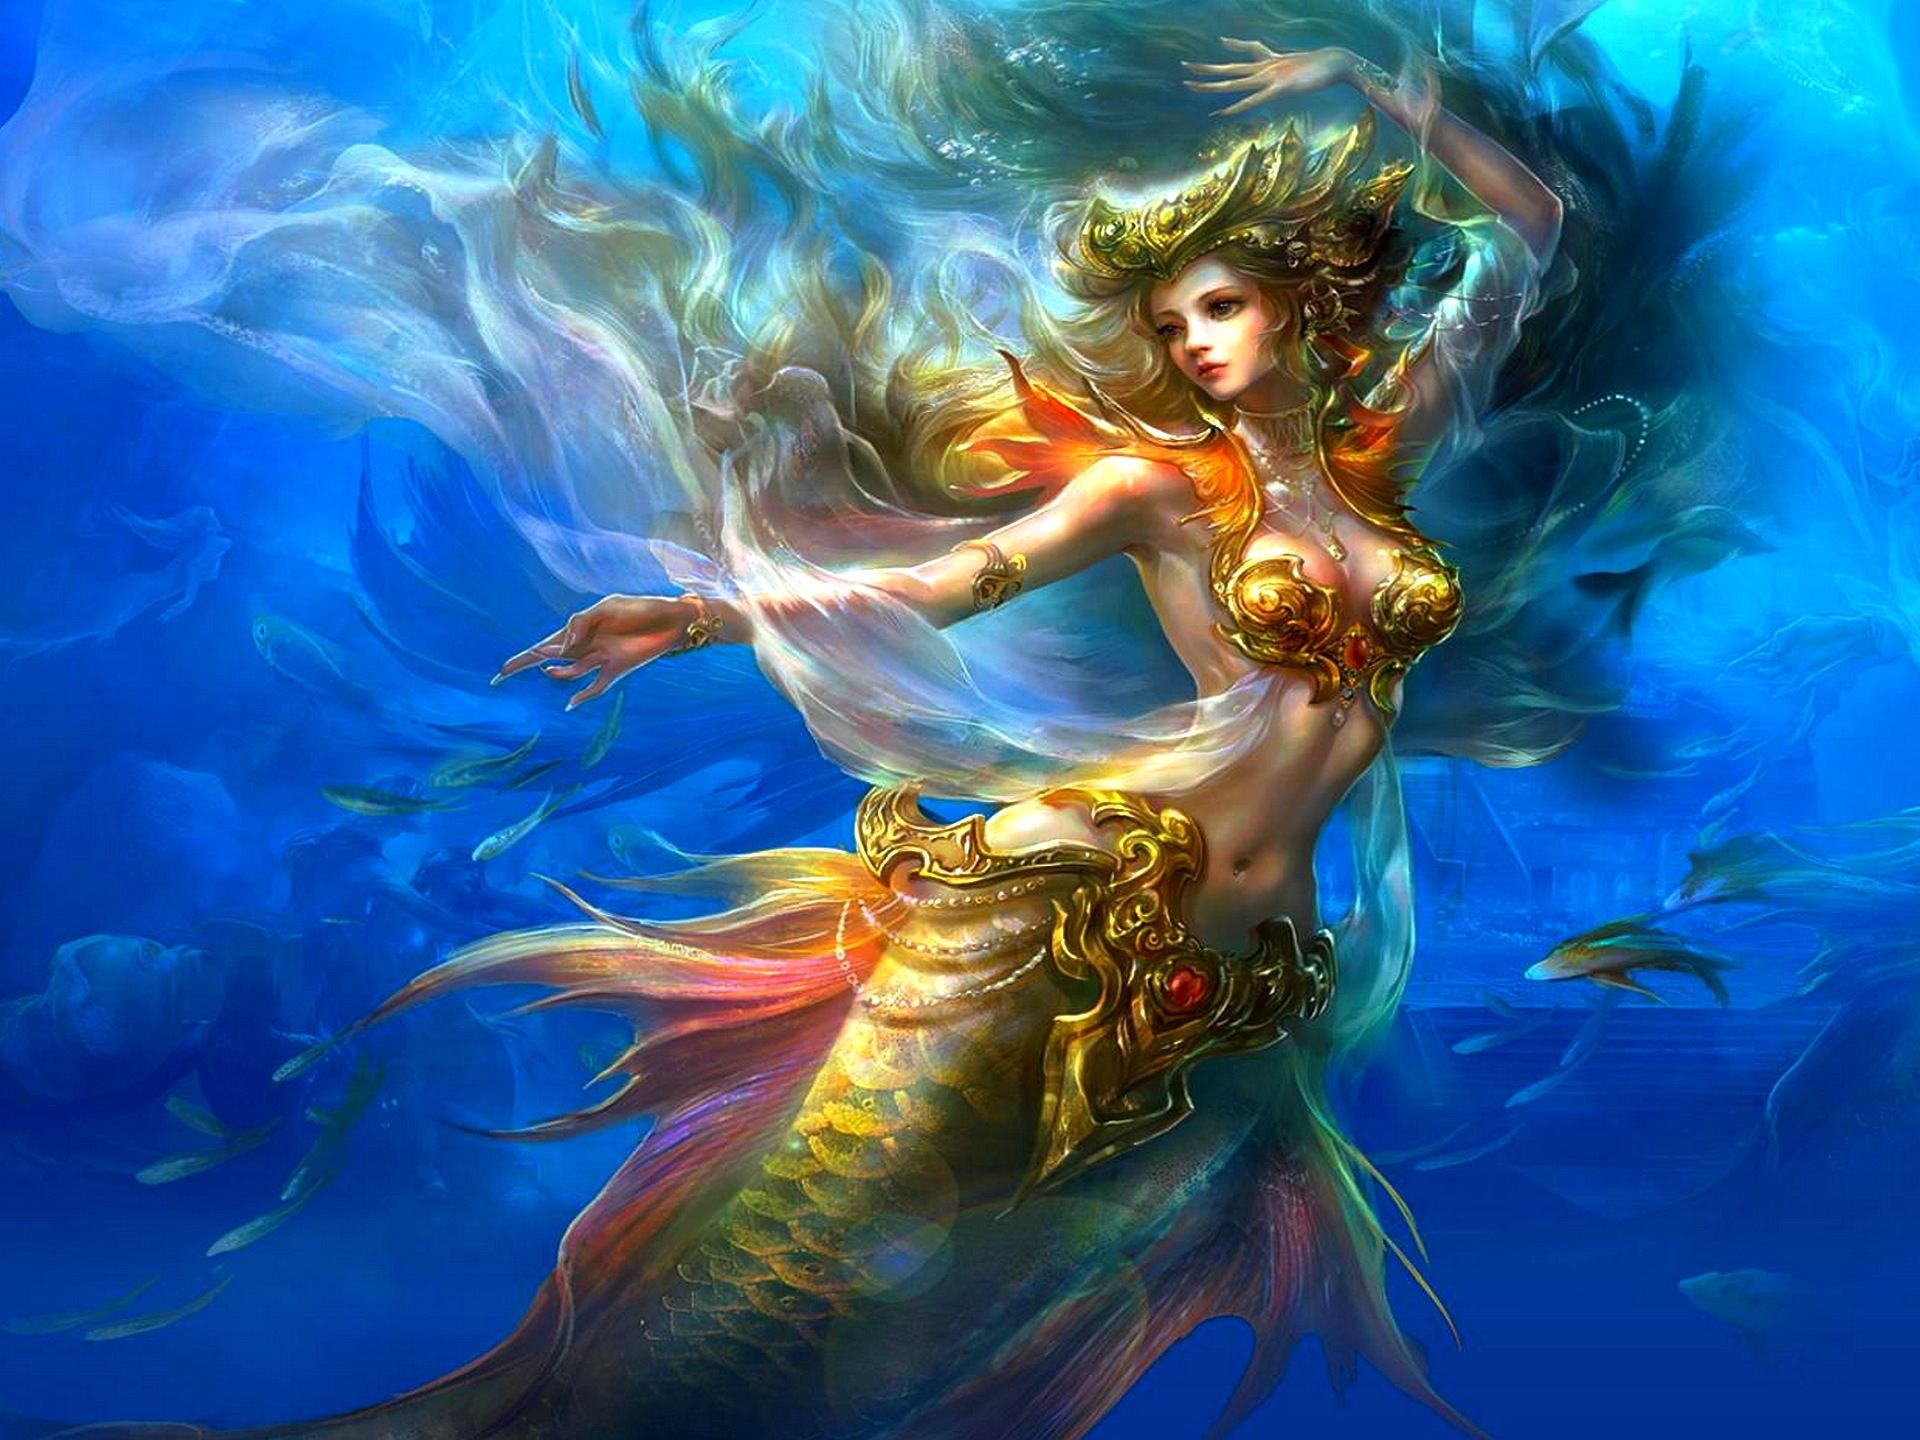 Anime Mermaids Warrior 730.22 Kb